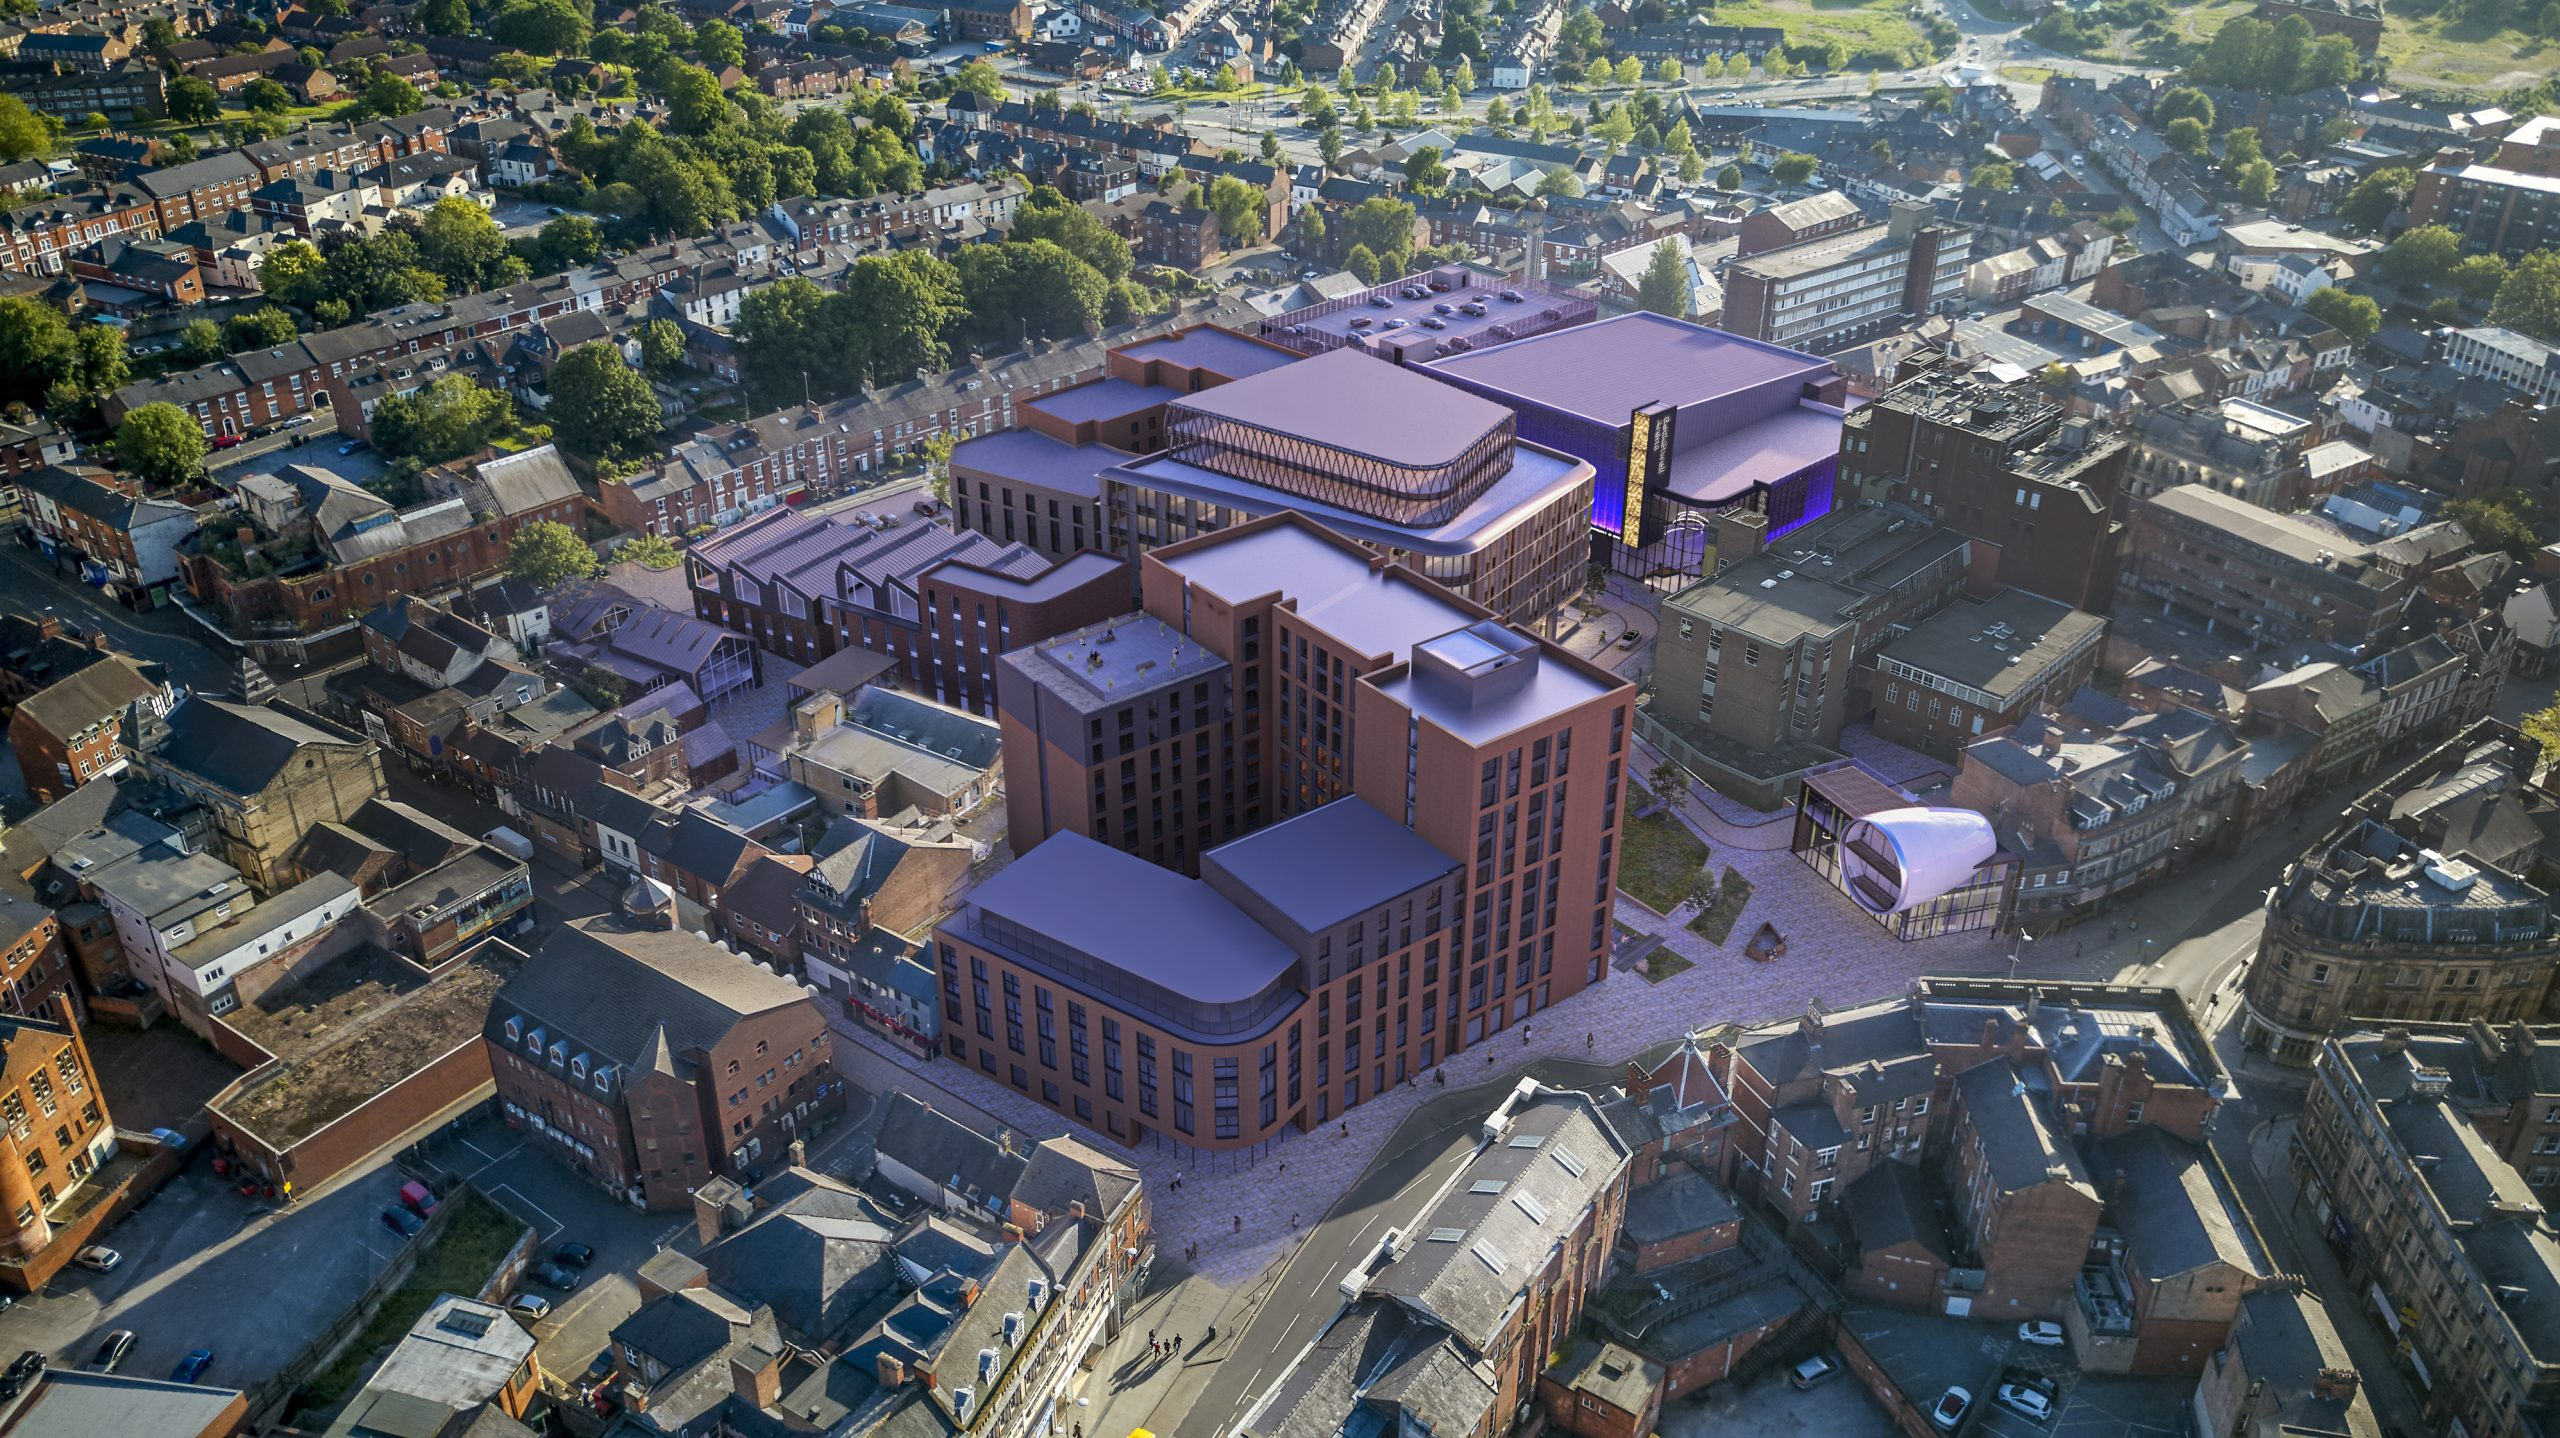 GMI awarded contract to build new £30M build to rent residential scheme within new Becketwell development in Derby